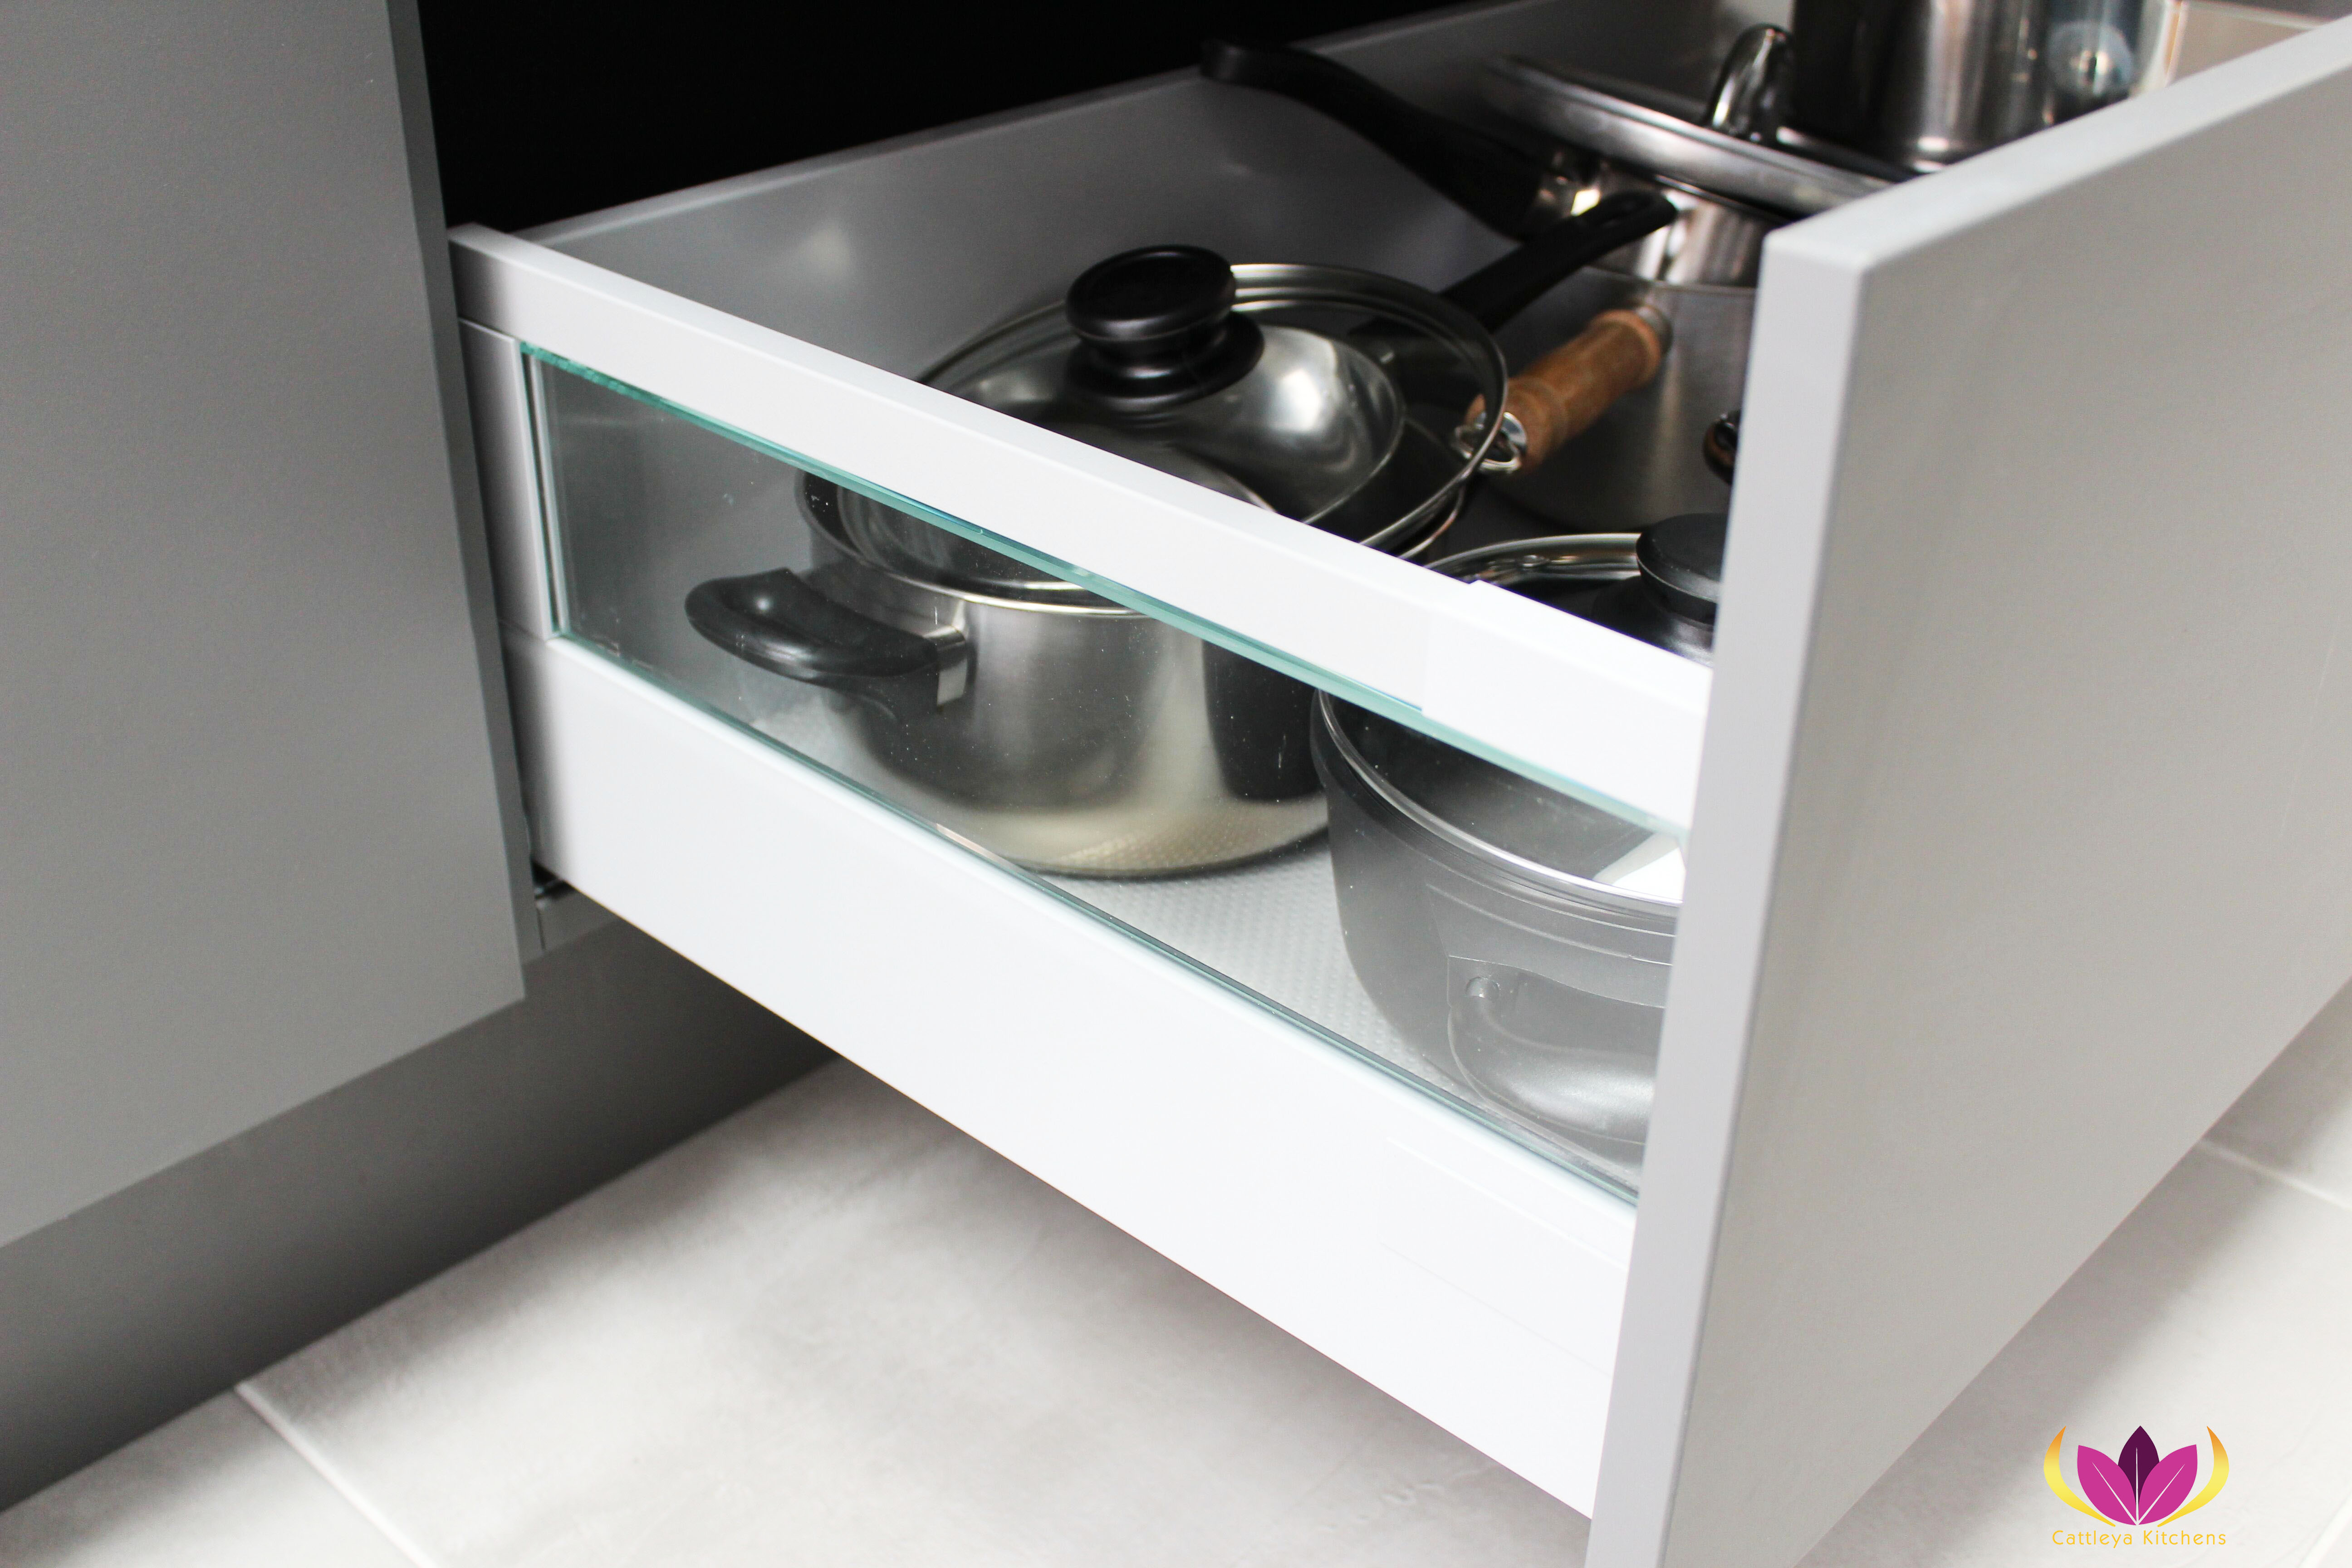 Drawers with glass side panel with non slip mat Edgware Finished Kitchen Project